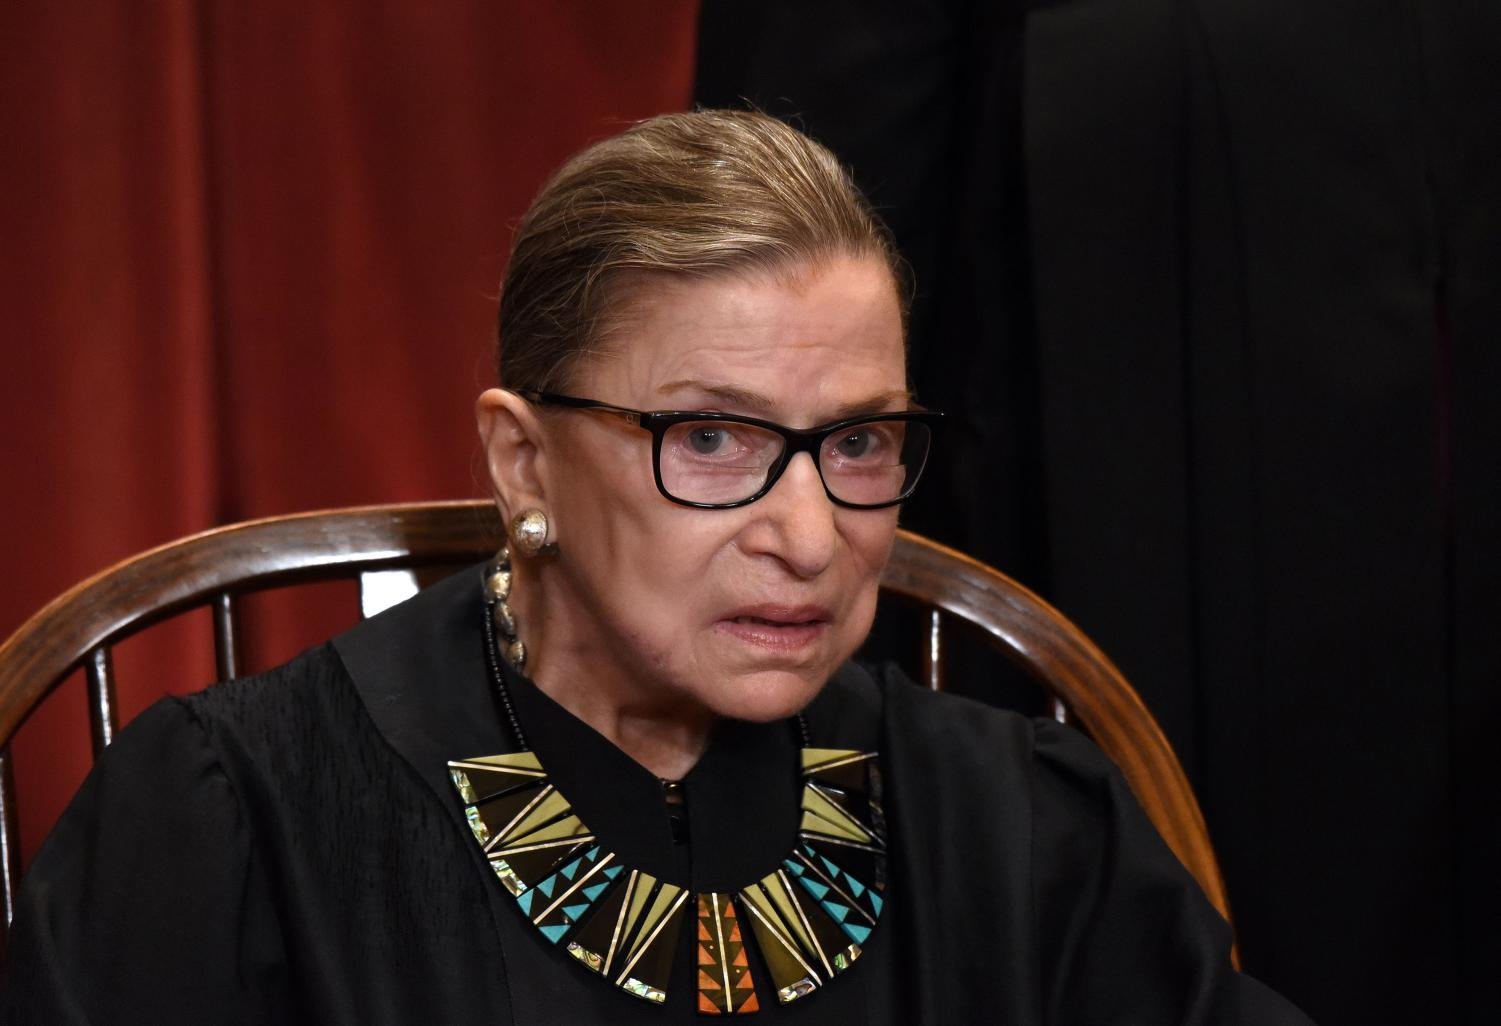 Justice Ruth Bader Ginsburg at the Supreme Court building. Ginsburg said without mandated fees in place, unions would have diminished resources.